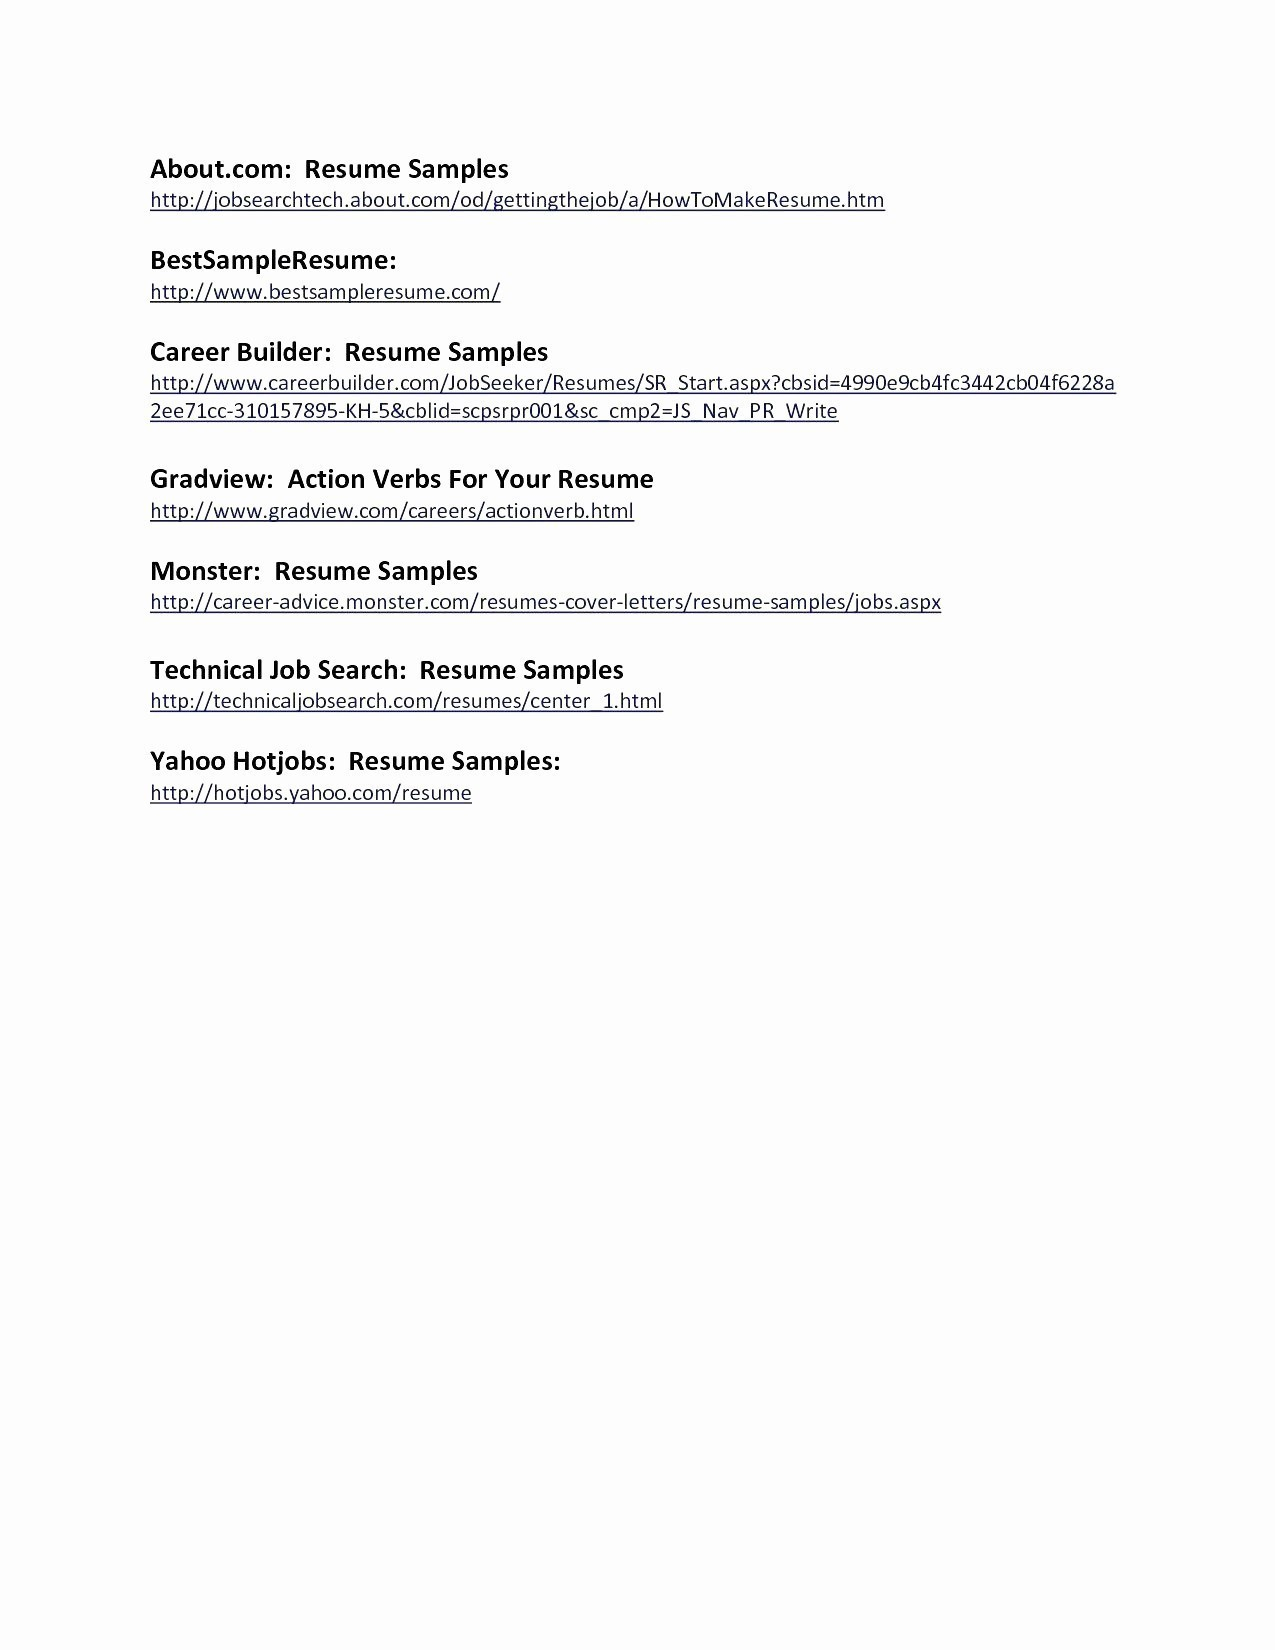 Pay someone to Write My Resume - Pay someone to Write My Resume Elegant Pay someone to Write My